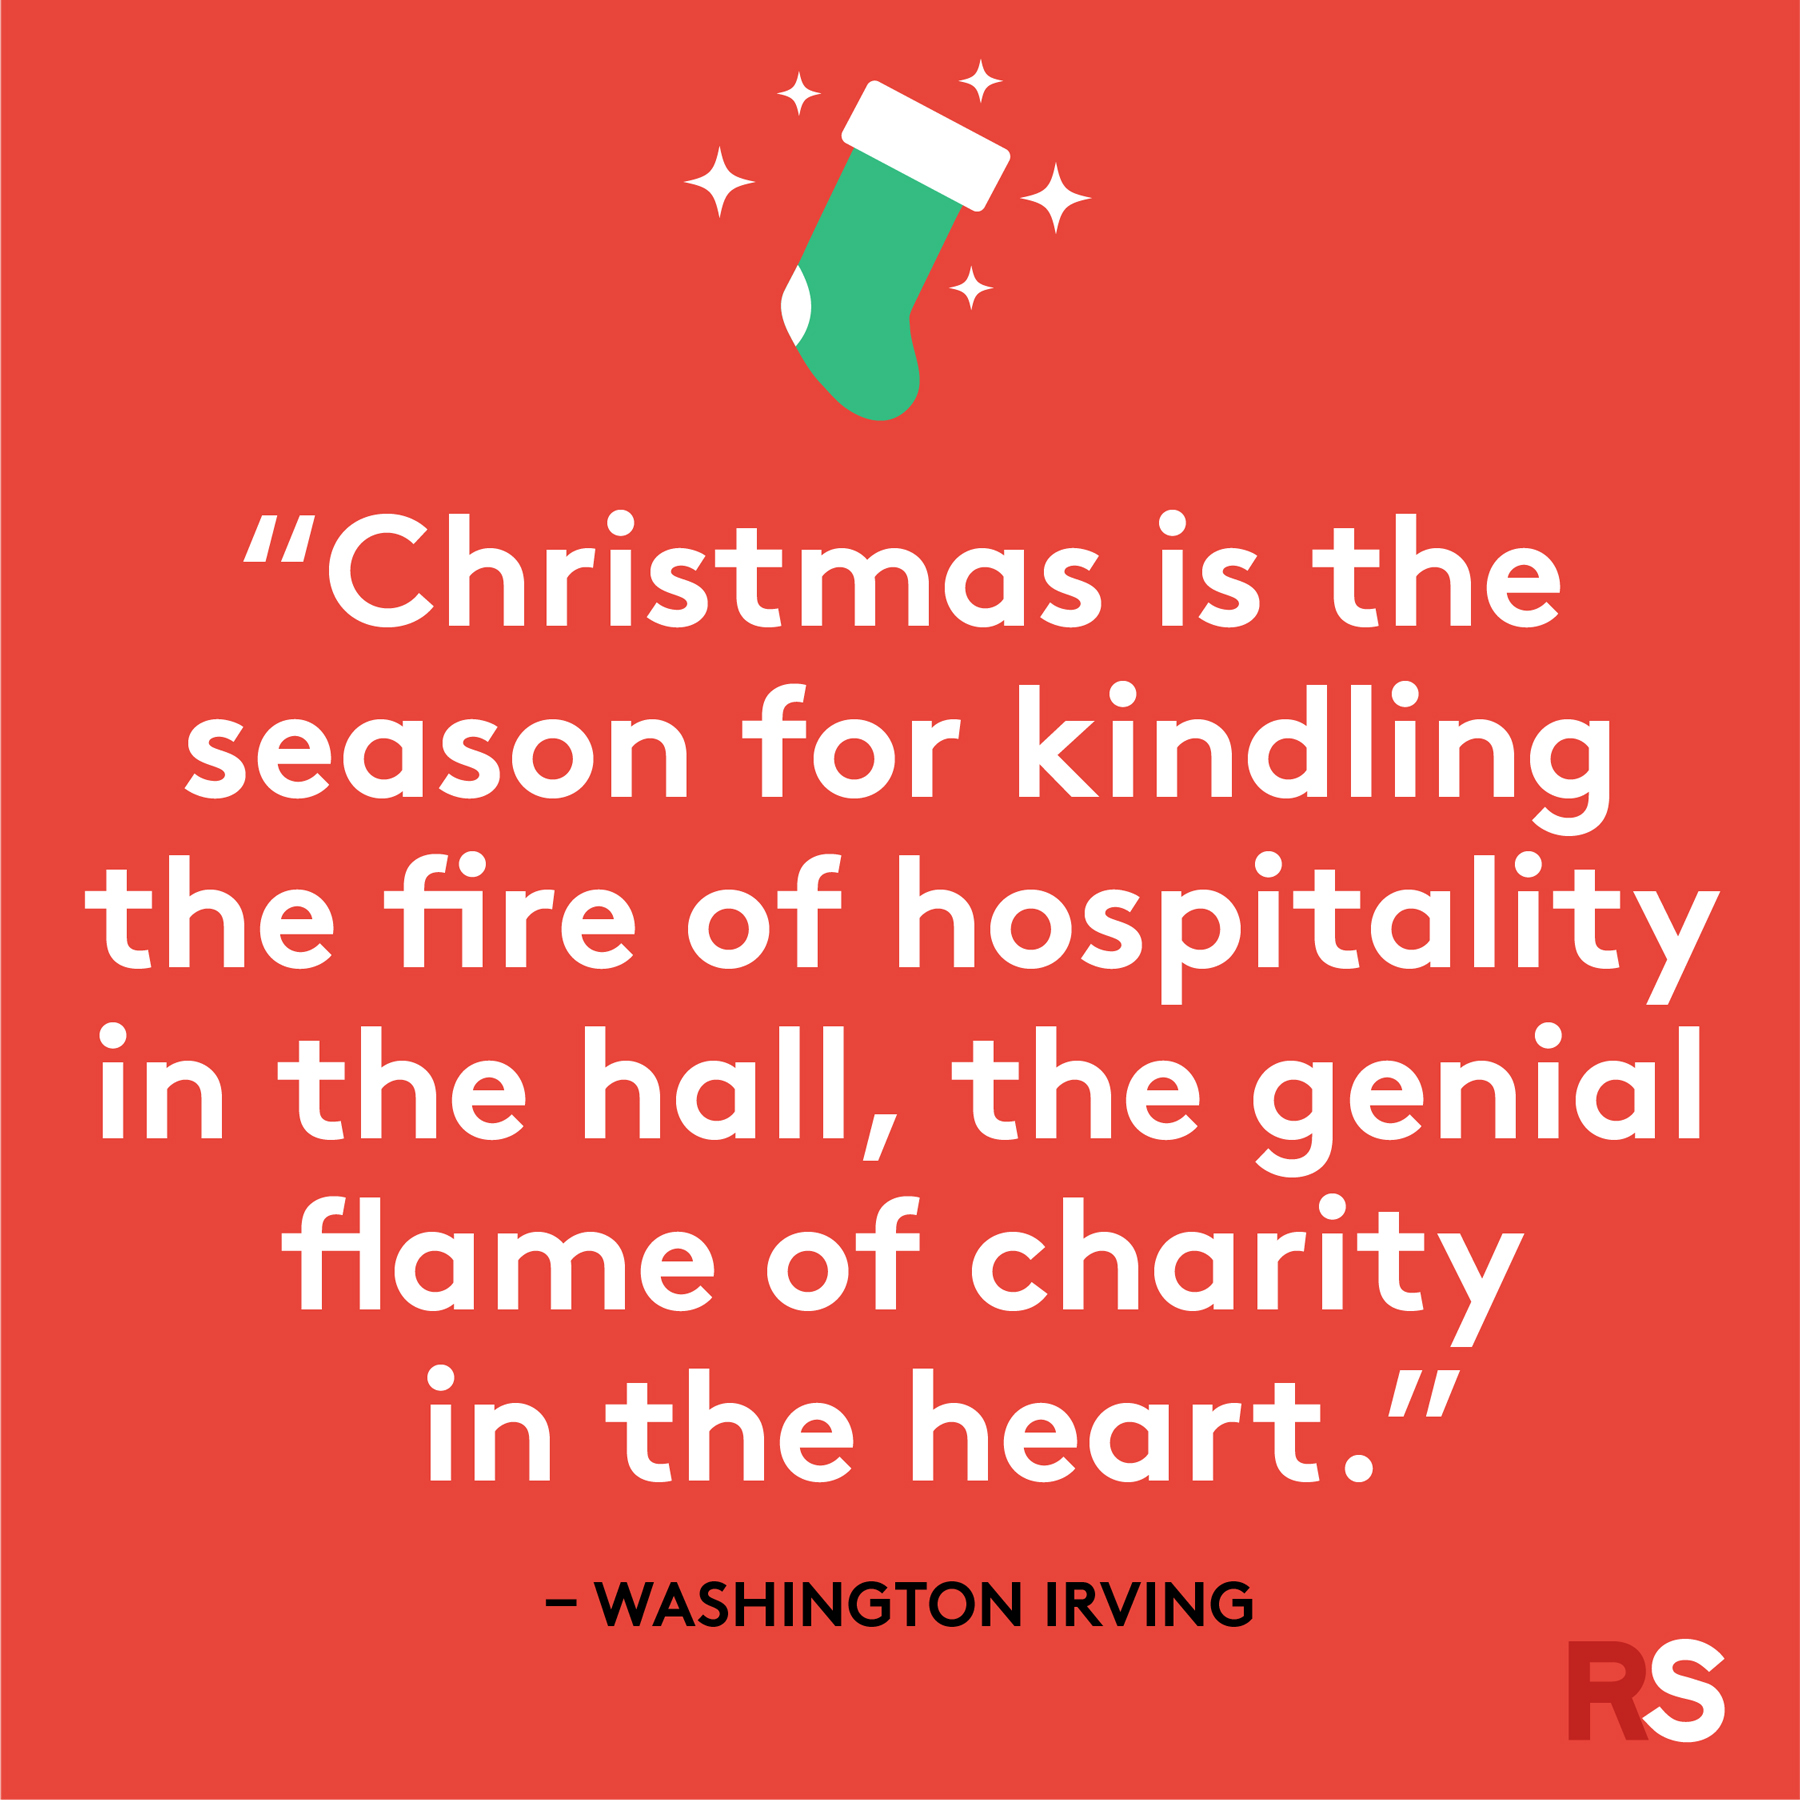 Best Christmas quotes - Washington Irving